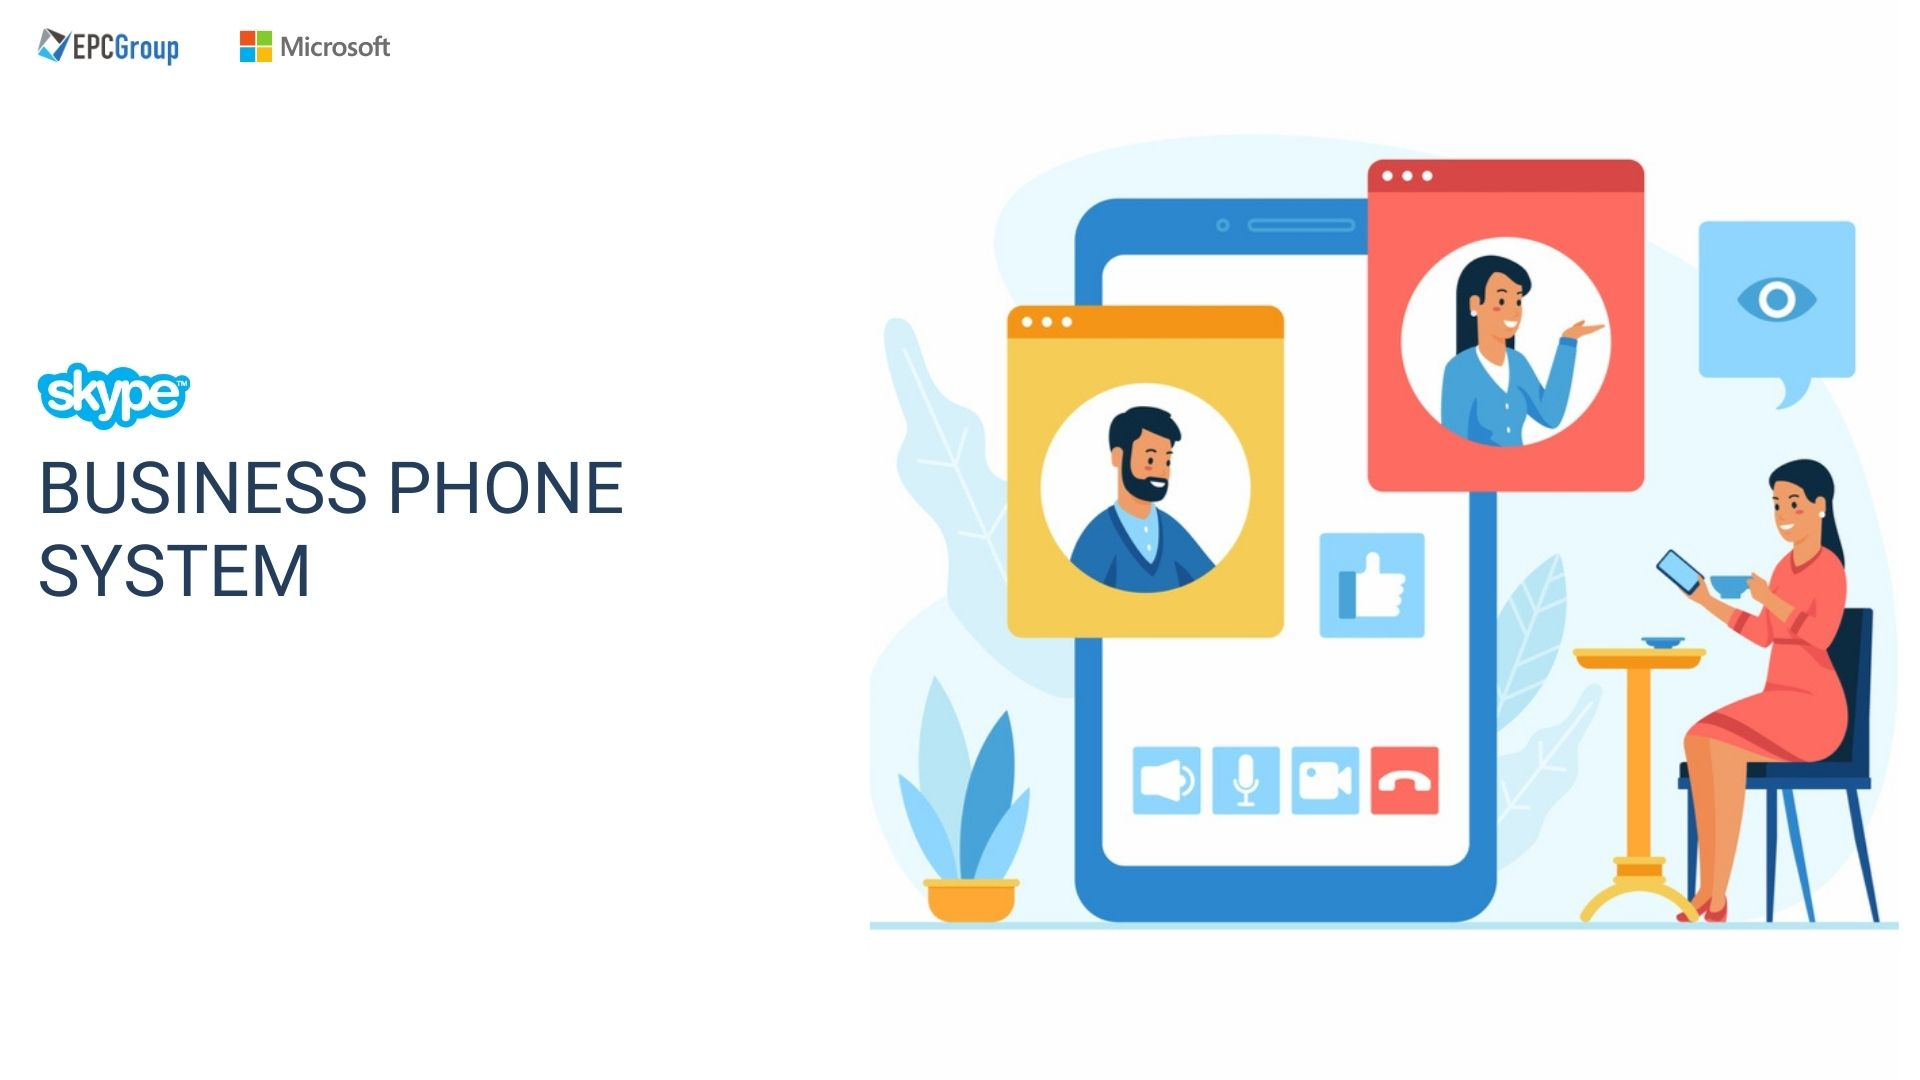 Guide For Skype For Business Phone System - thumb image